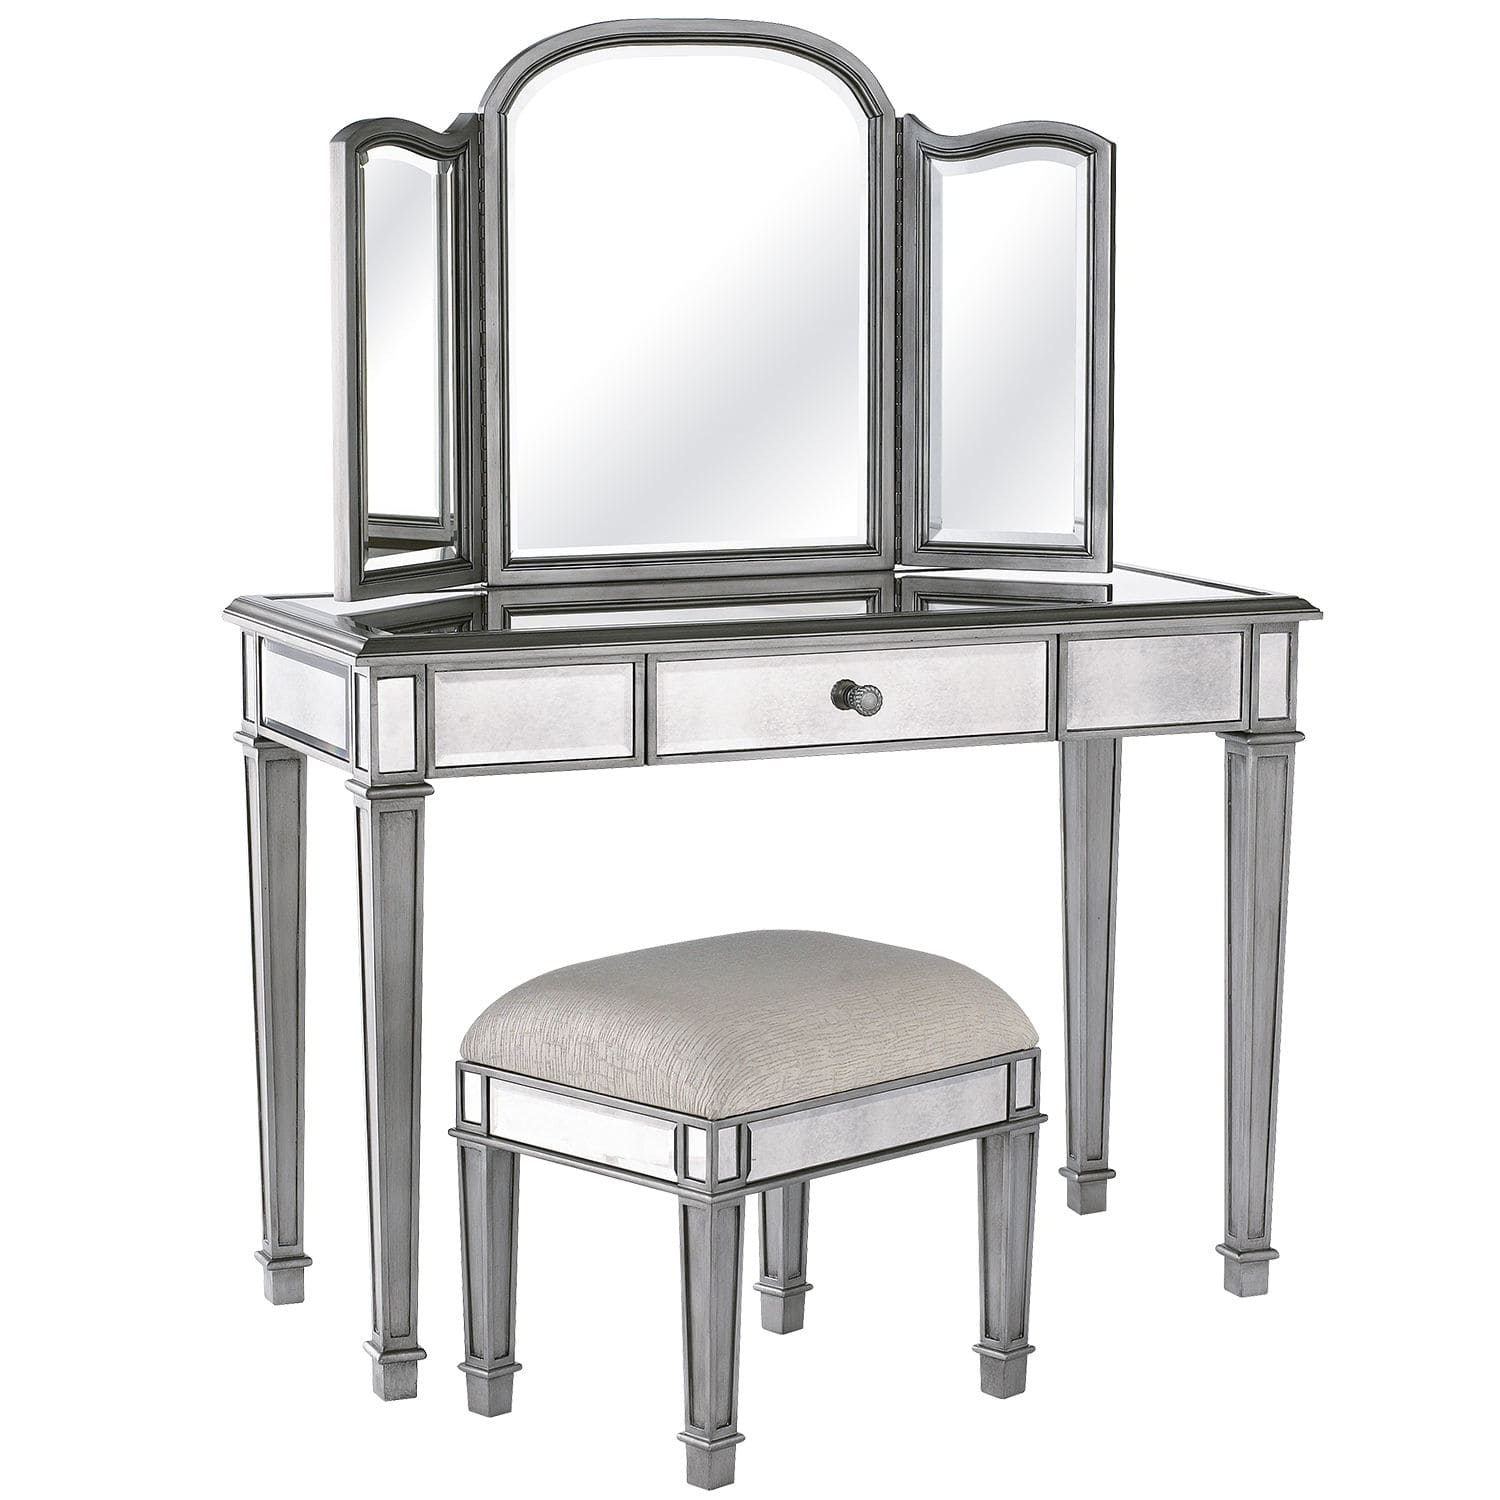 Mirrored Vanity Set for Elegant Bedroom Furniture Design: Makeup Vanity Sale | Vanity Set With Lights For Bedroom | Mirrored Vanity Set